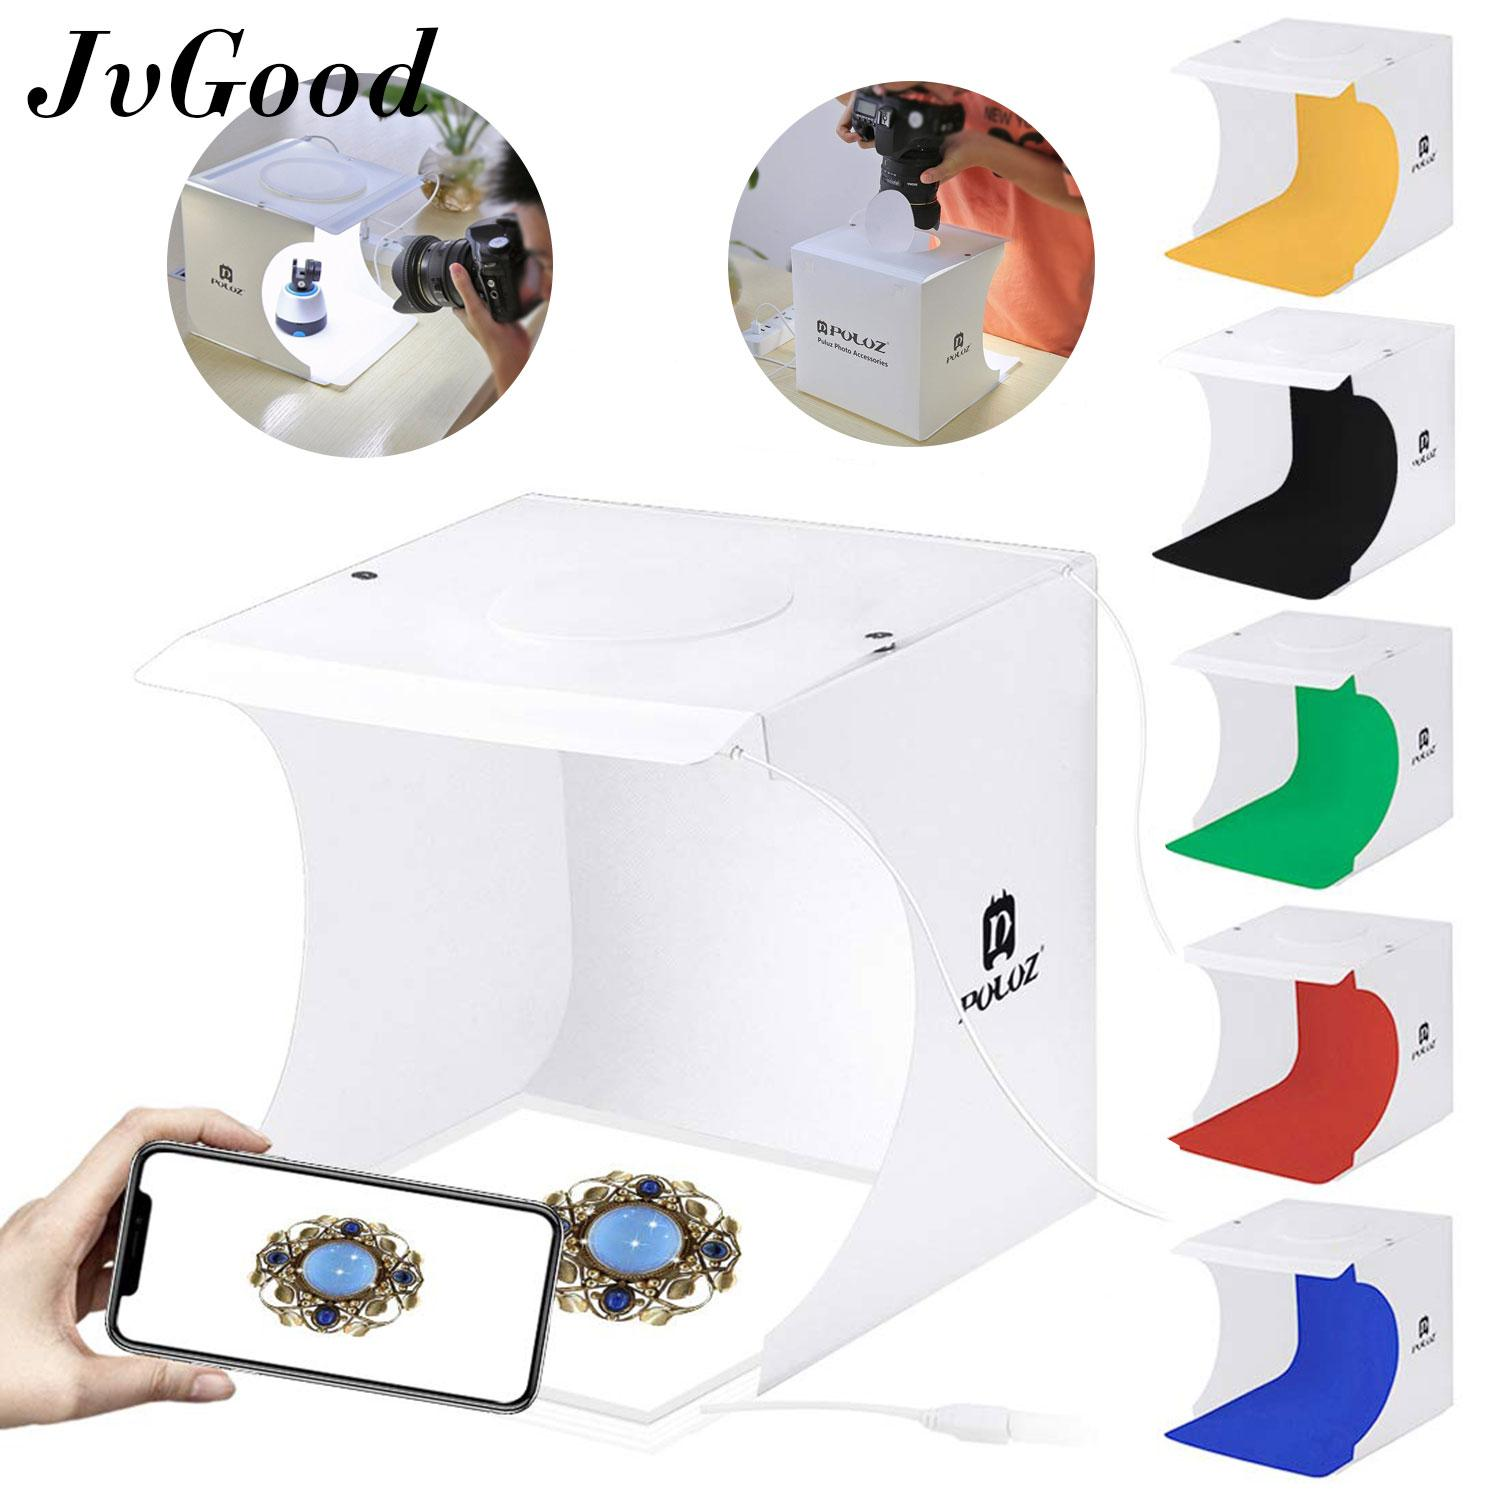 Jvgood Mini Photo Studio Box Portable Folding Photo Light Lighting Box Double Led Panel Cube With 6 Built-In Light Photography Backdrop Come With Bag By Jvgood.